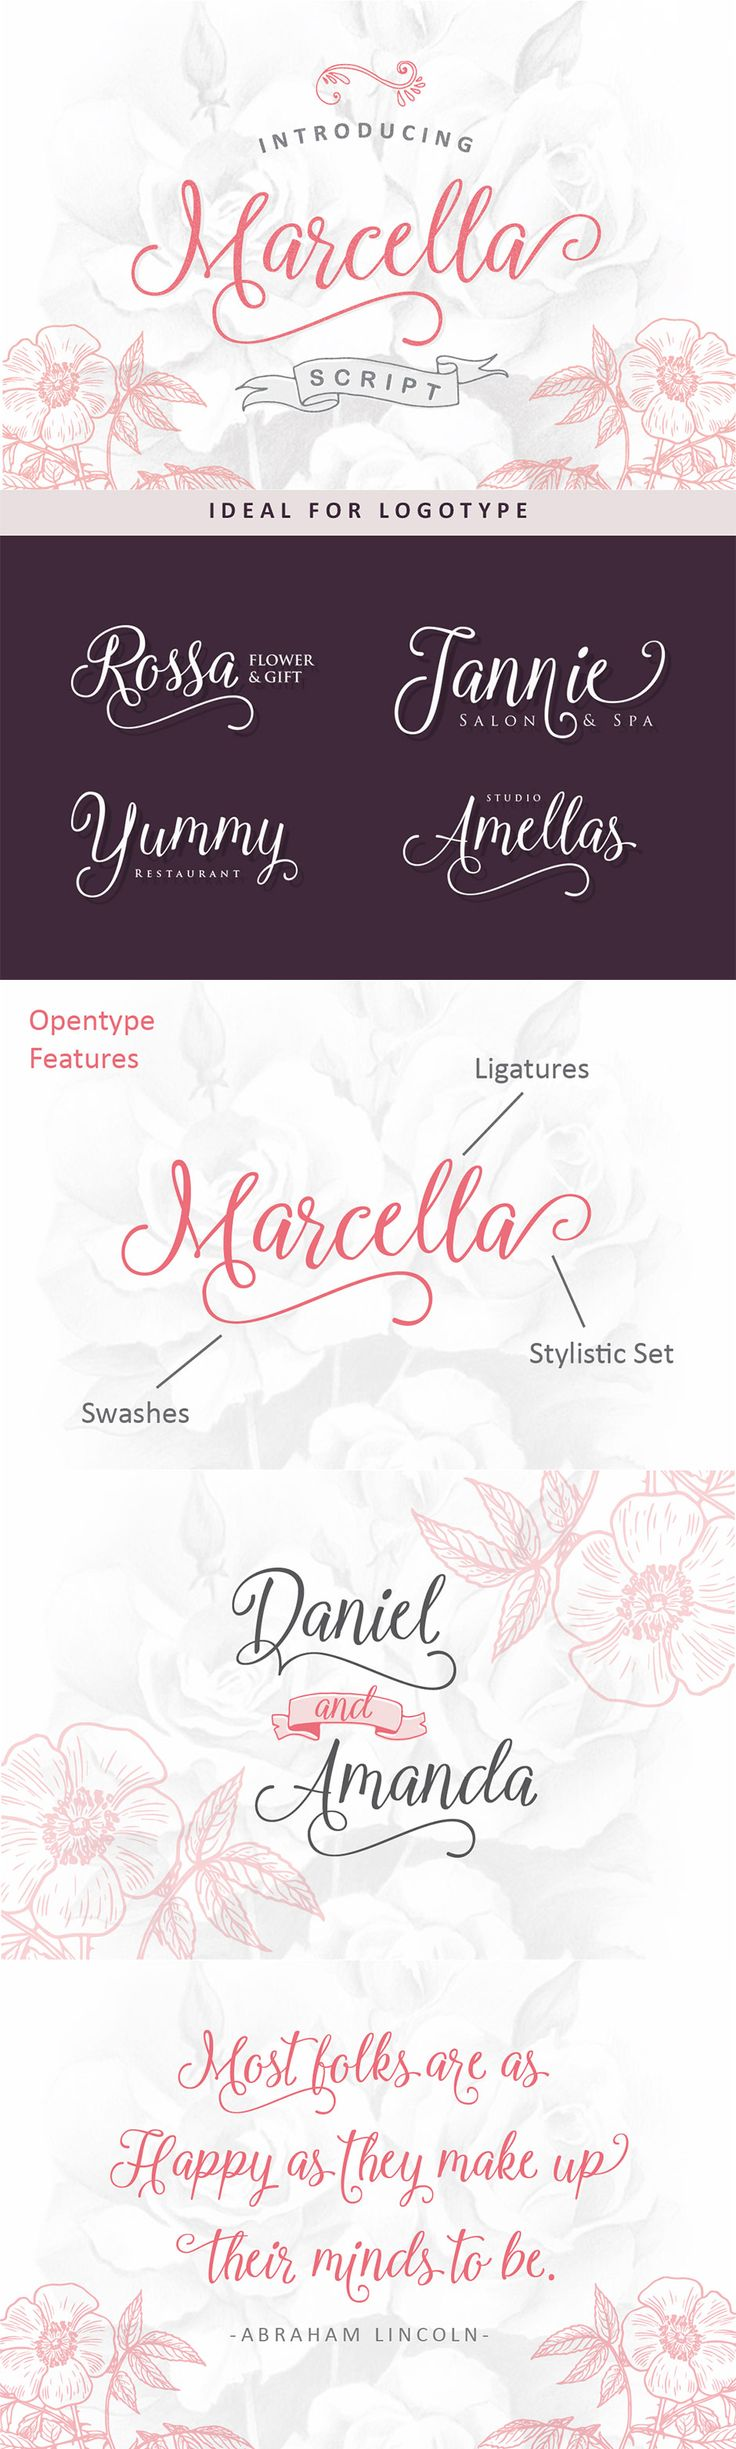 24 Exceptional Quality Fonts   July 2015   Marcella Script Font by Ian Mikraz   purchased from Design Cuts